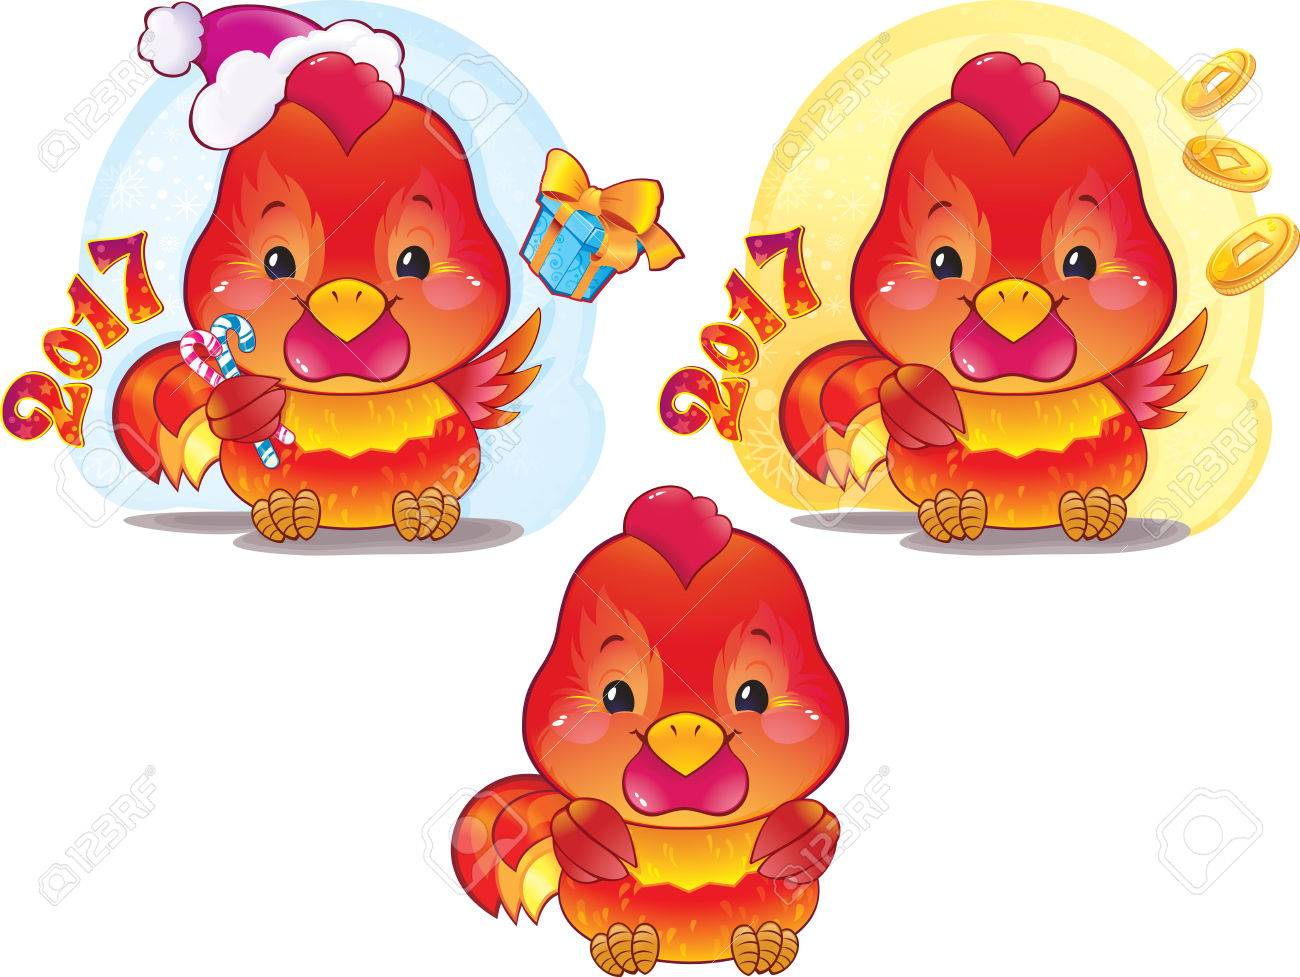 Cute Red Fire Rooster For The Chinese New Year The Red Fire